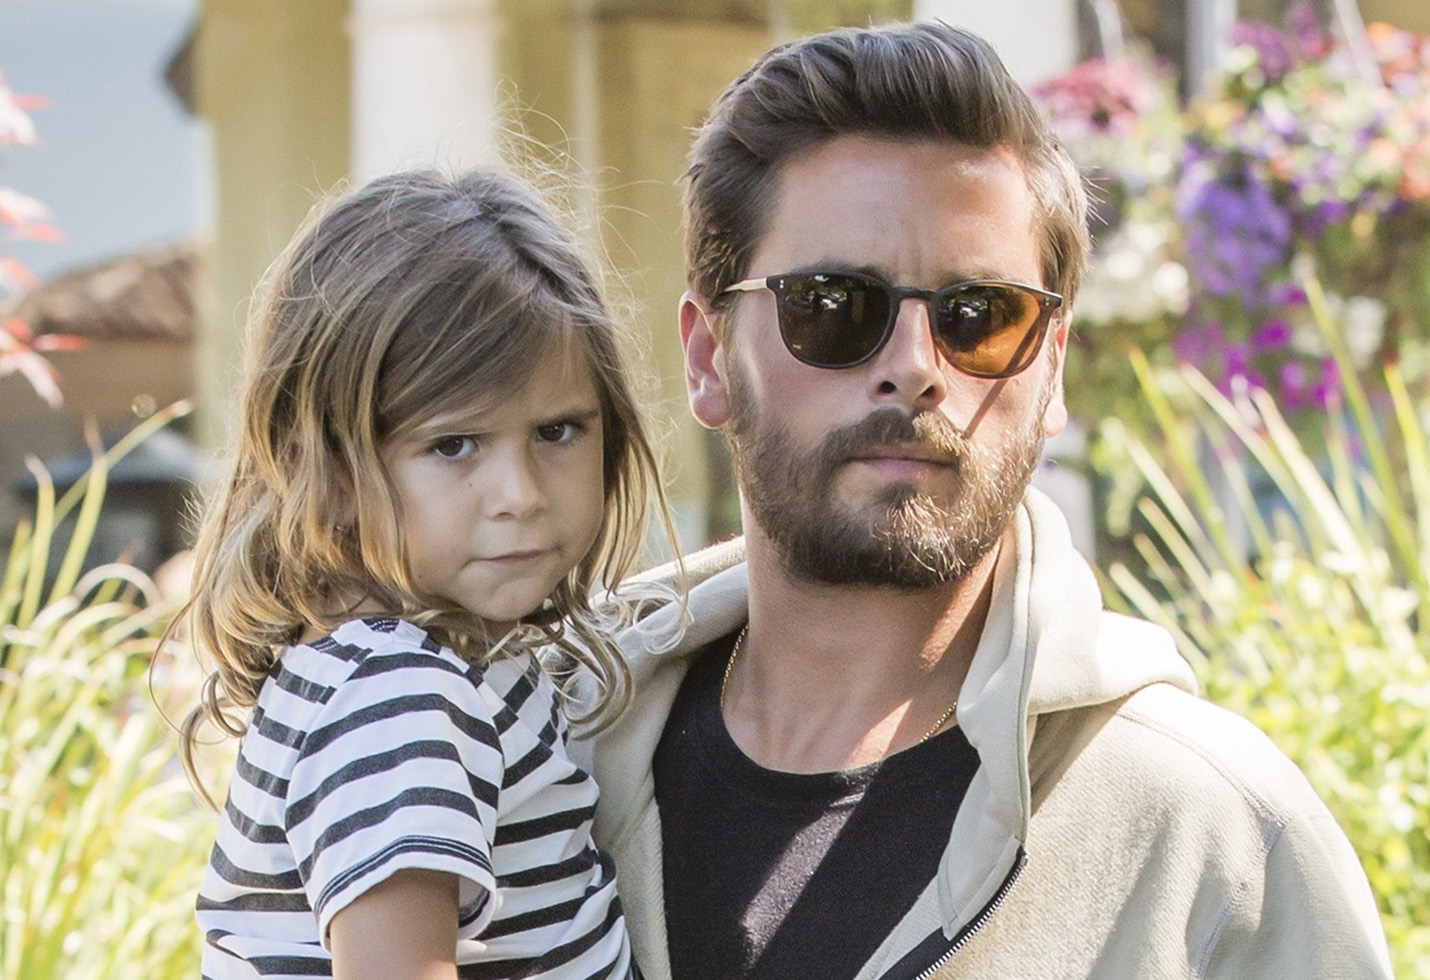 *EXCLUSIVE* Daddy's Girl! Scott Disick takes Penelope out for a sushi date